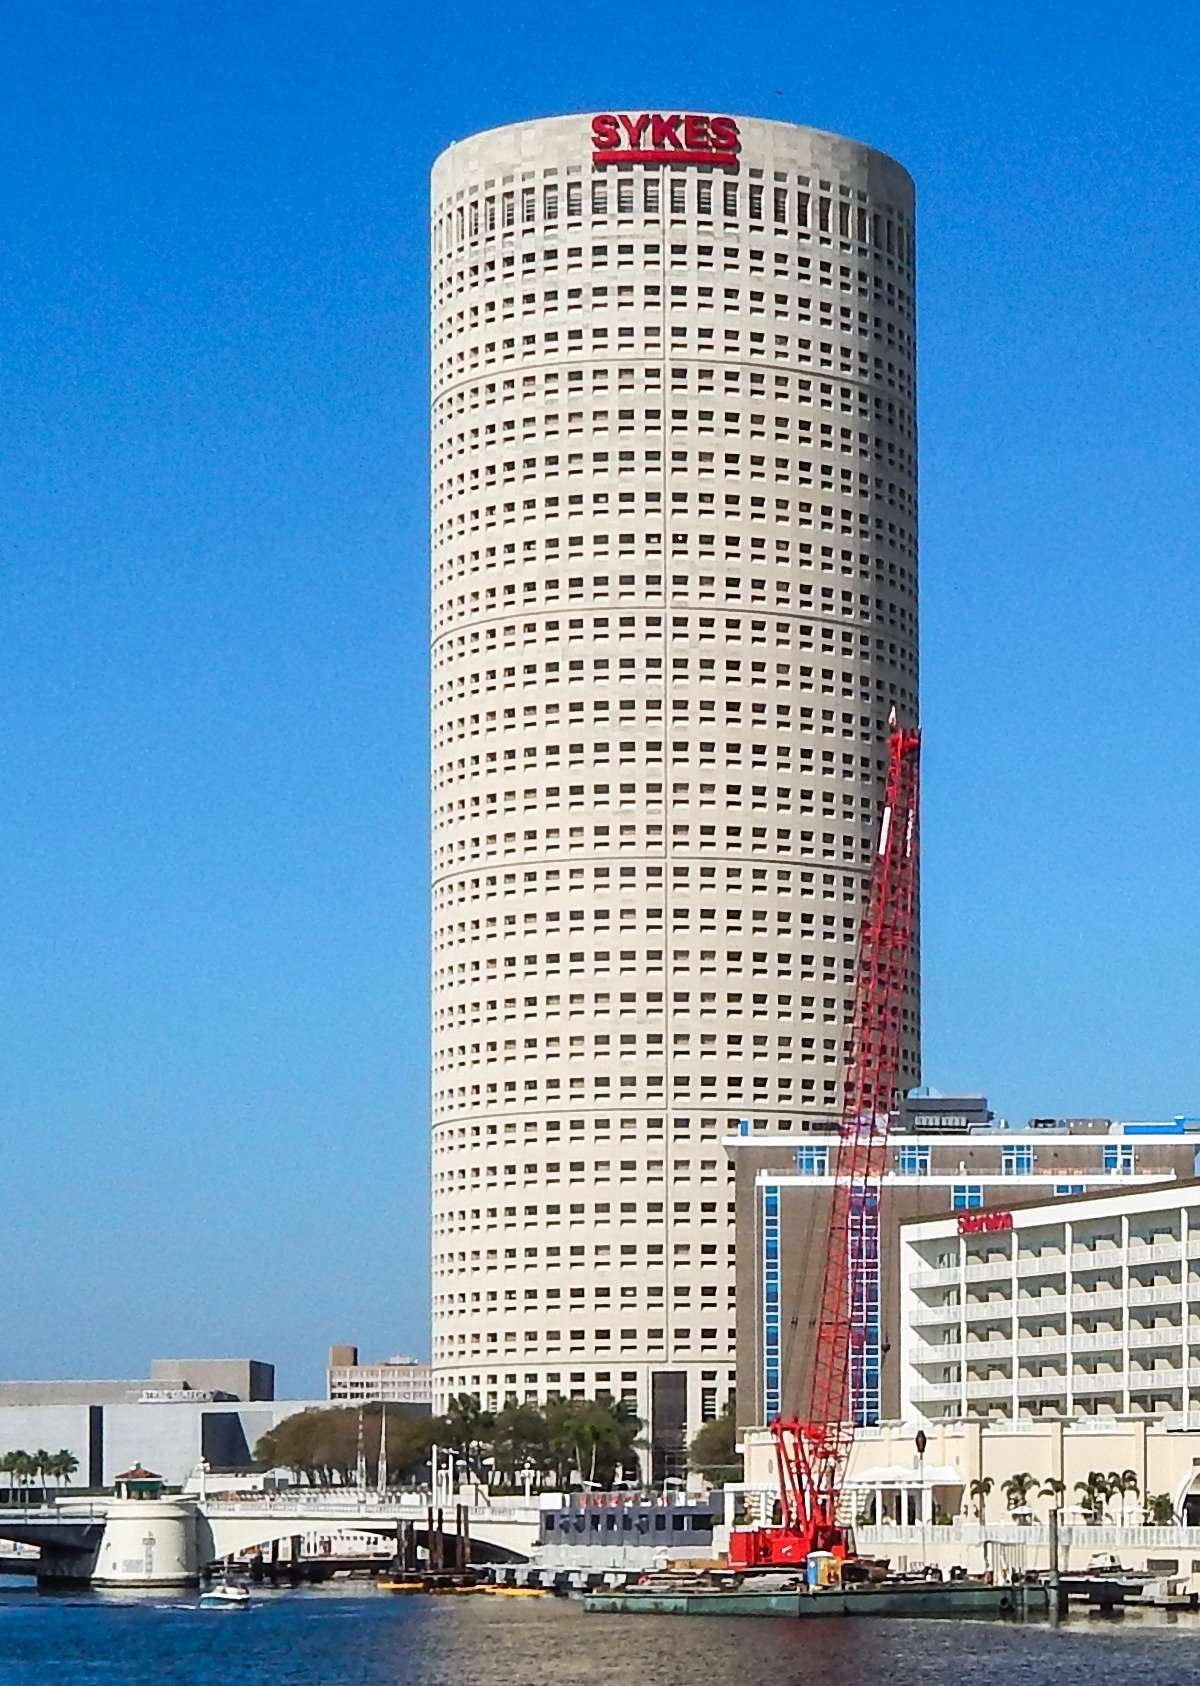 November 16, 2014: SYKES Tower building in Tampa, FL (credit Staff/photonews247.com)